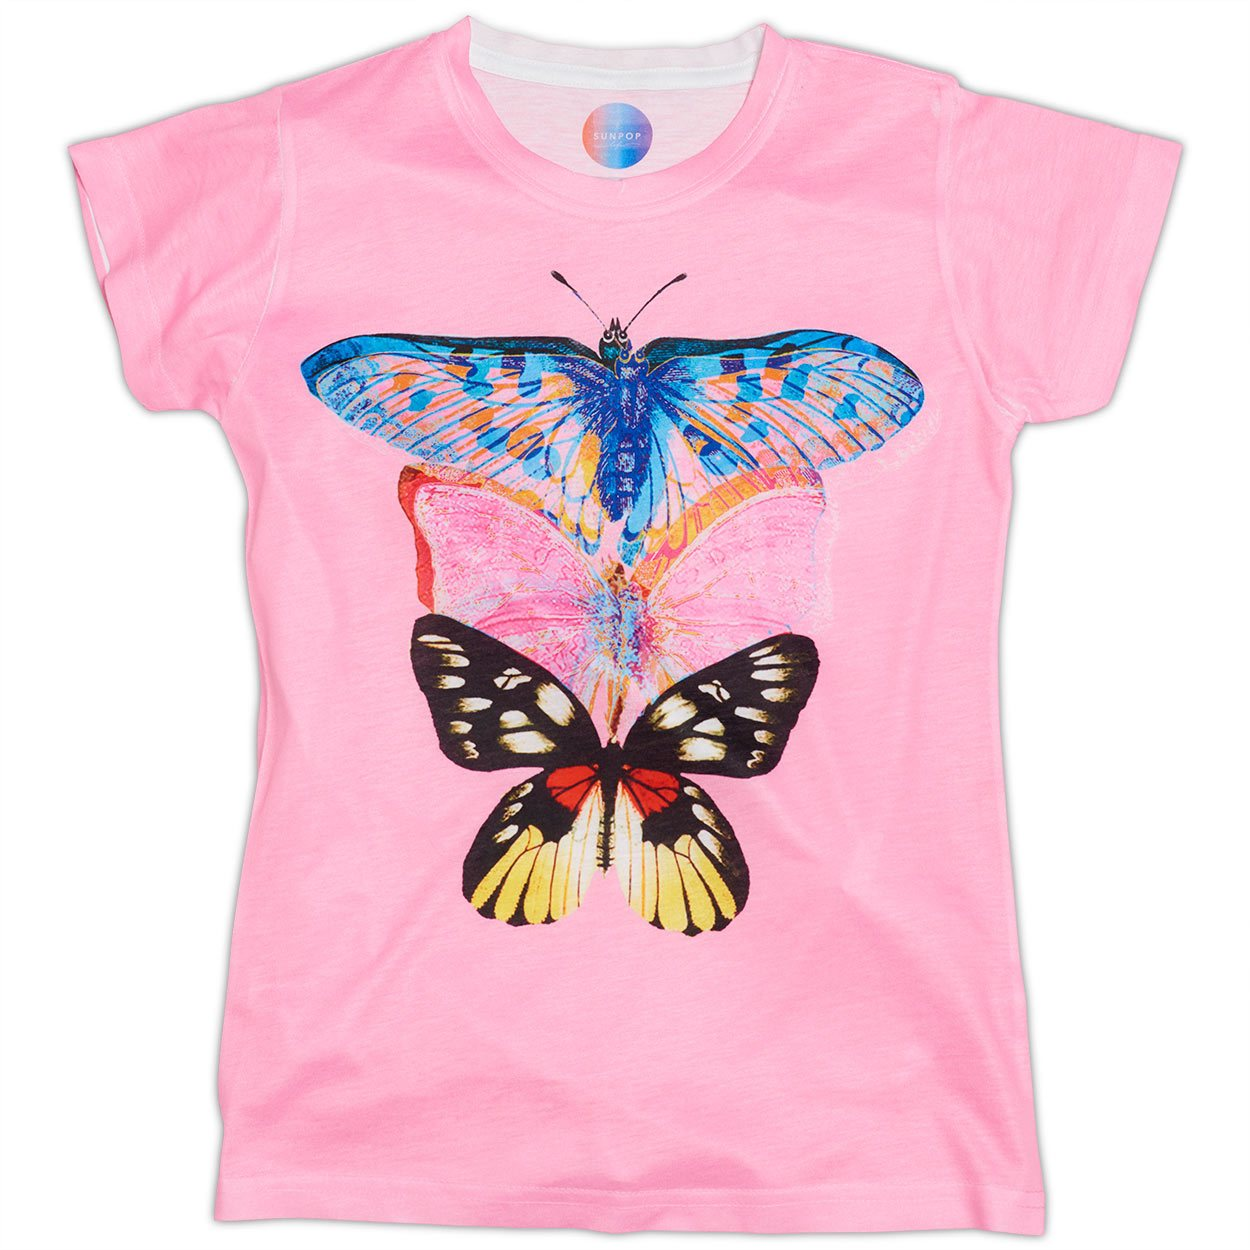 Girls Pink Butterfly Graphic T-shirt